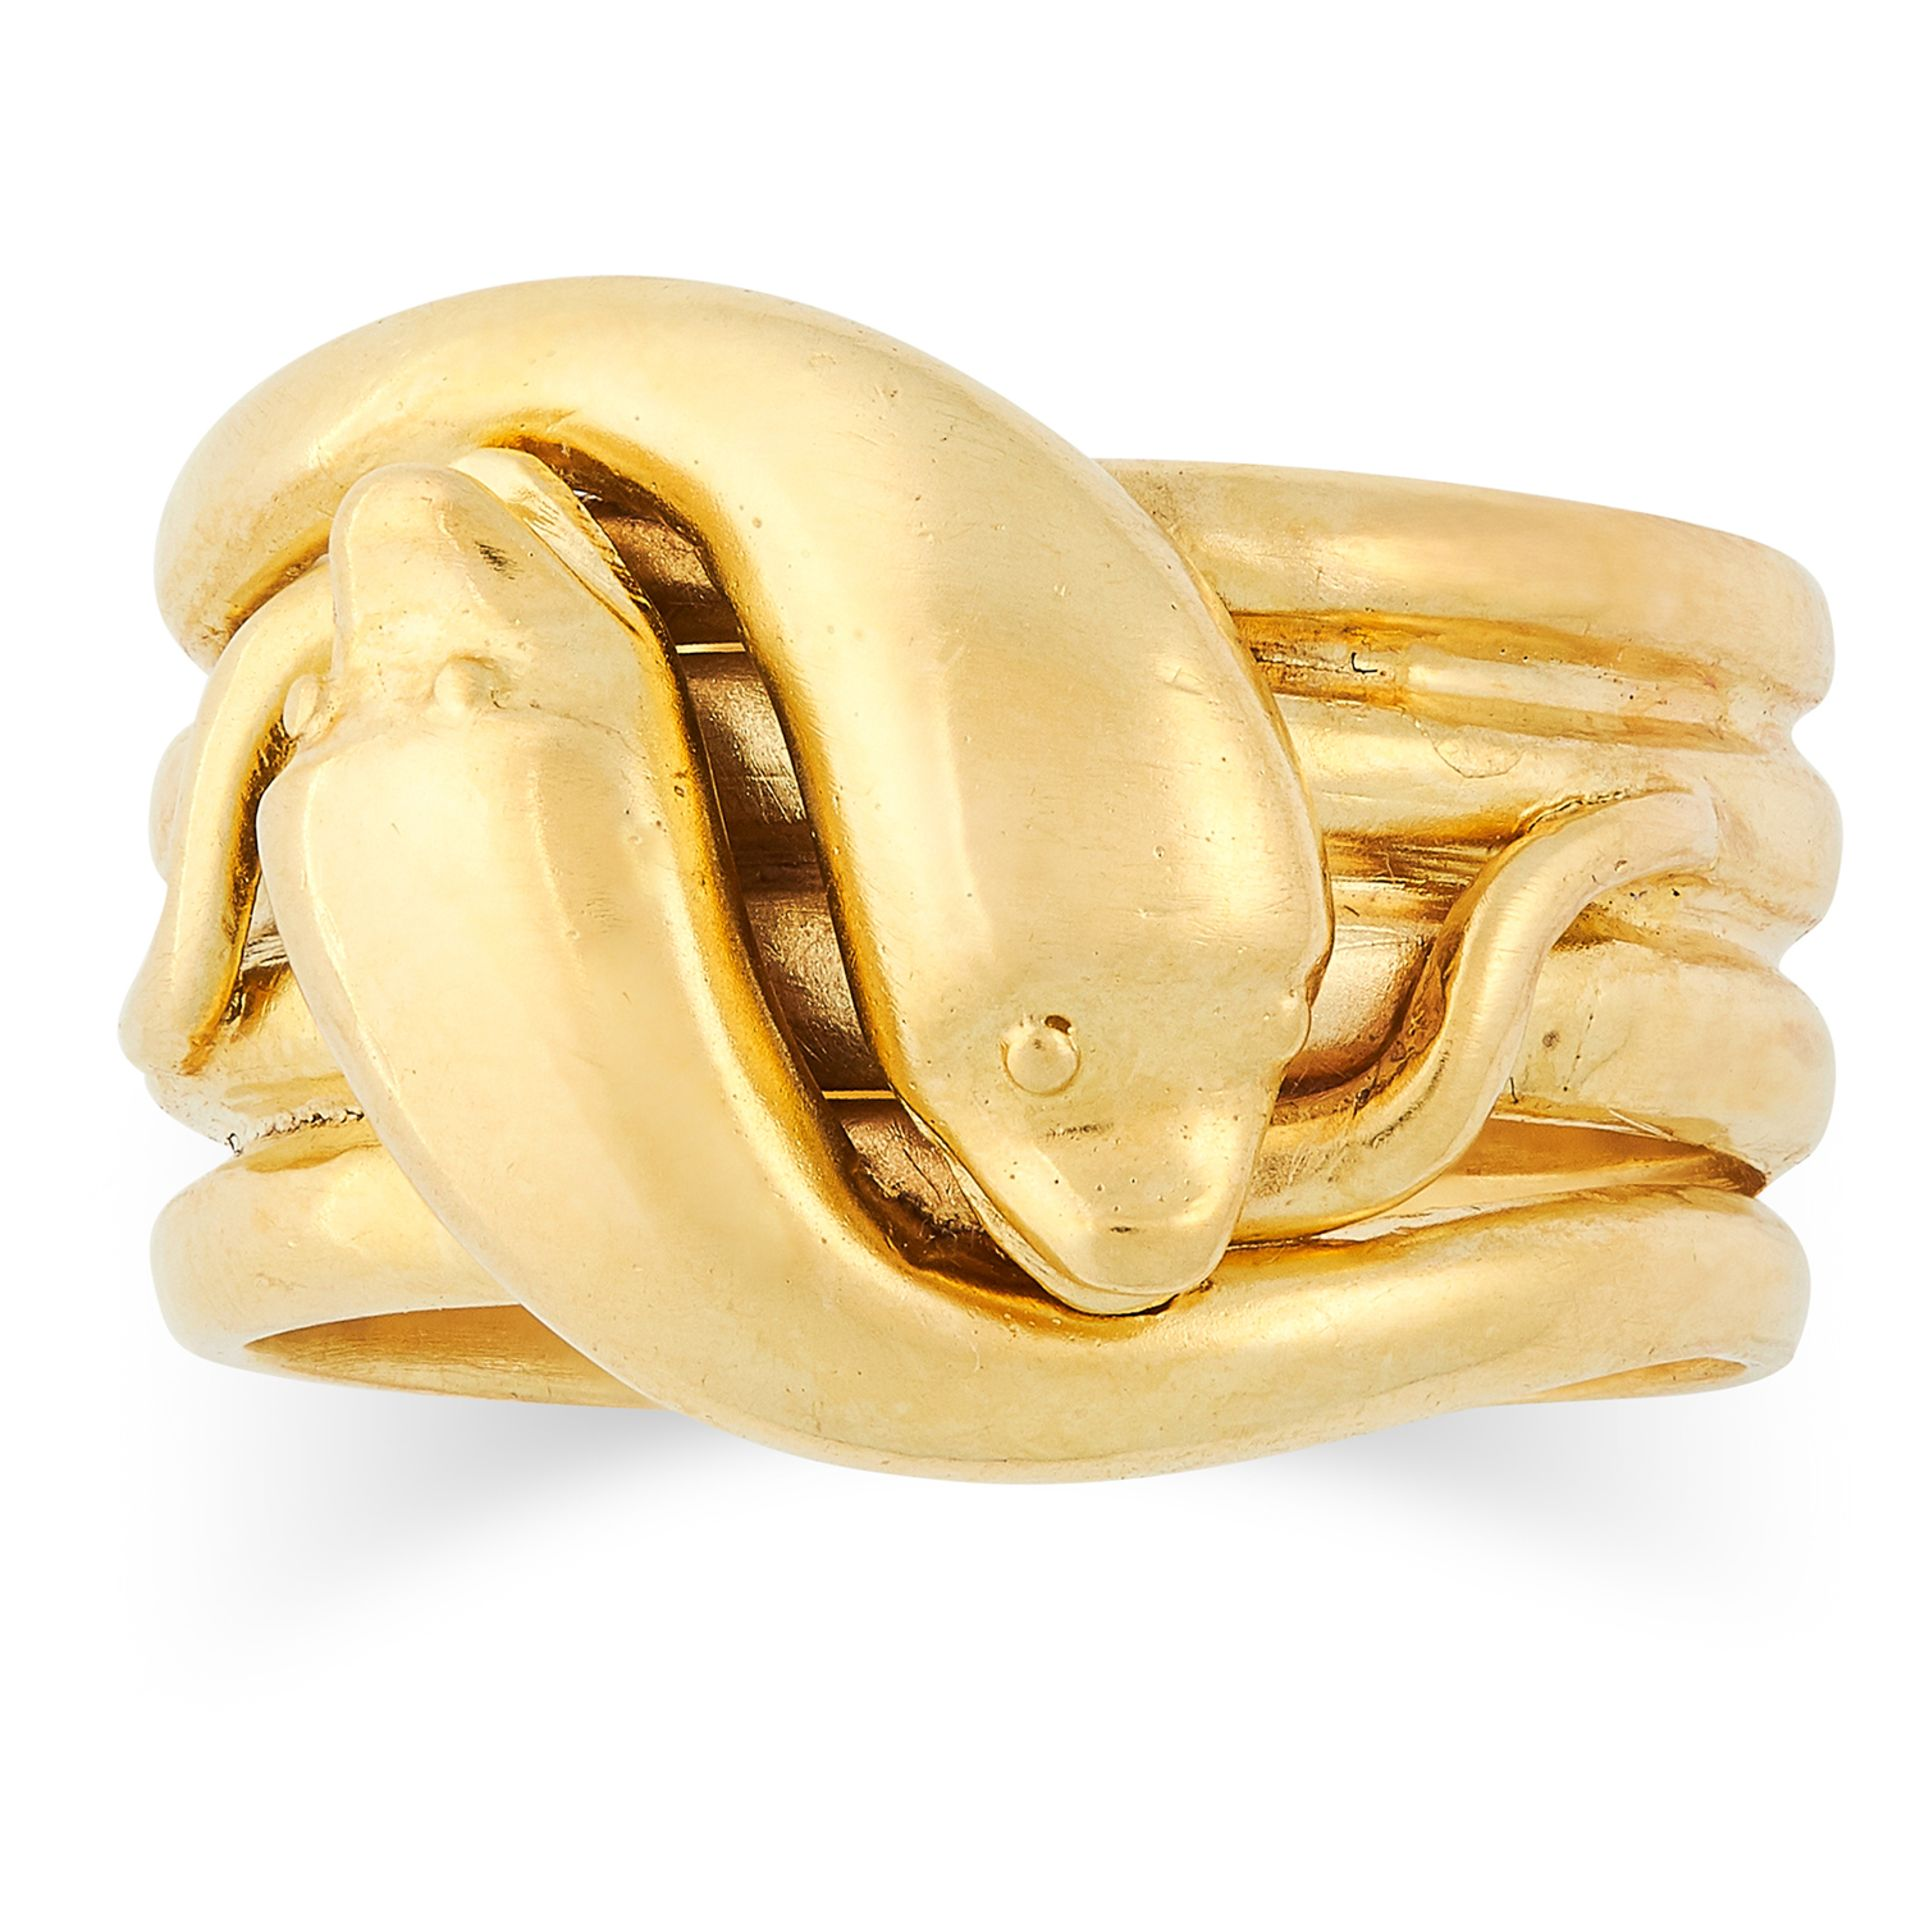 ANTIQUE SNAKE RING comprising of two intertwined snakes, size R / 8.5, 16.6g.